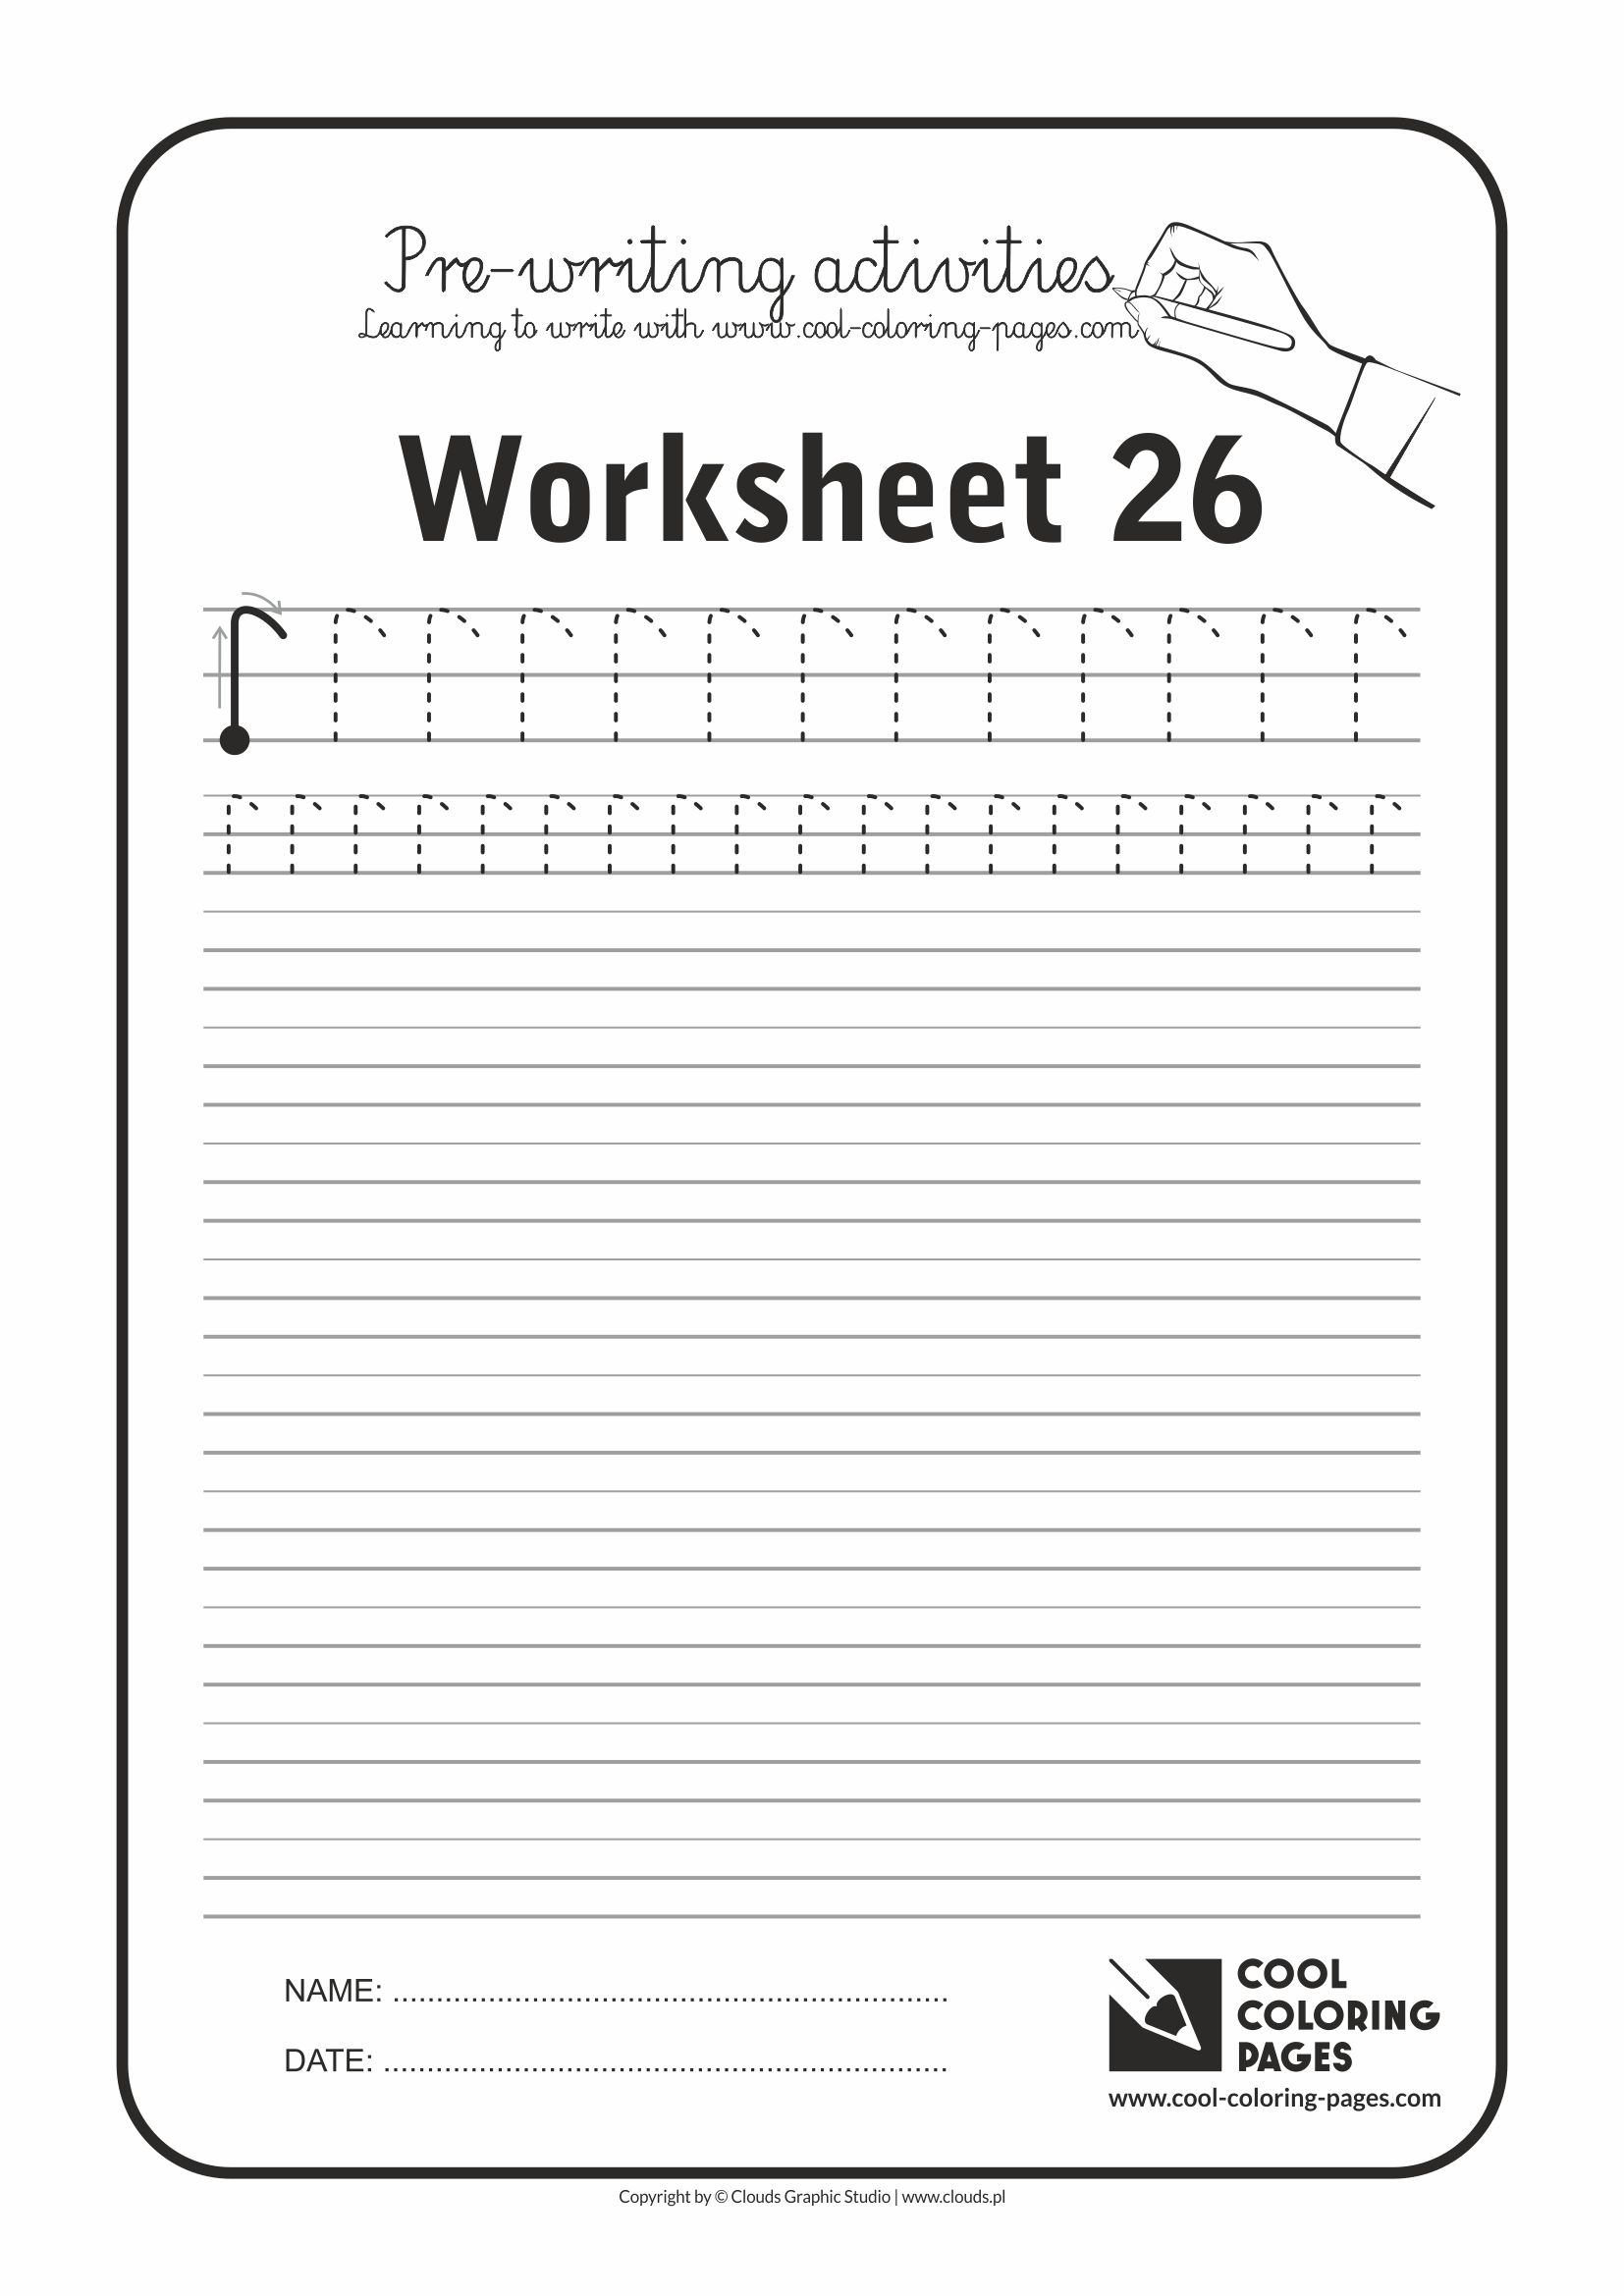 Cool Coloring Pages / Pre-writing activities / Worksheet no.26